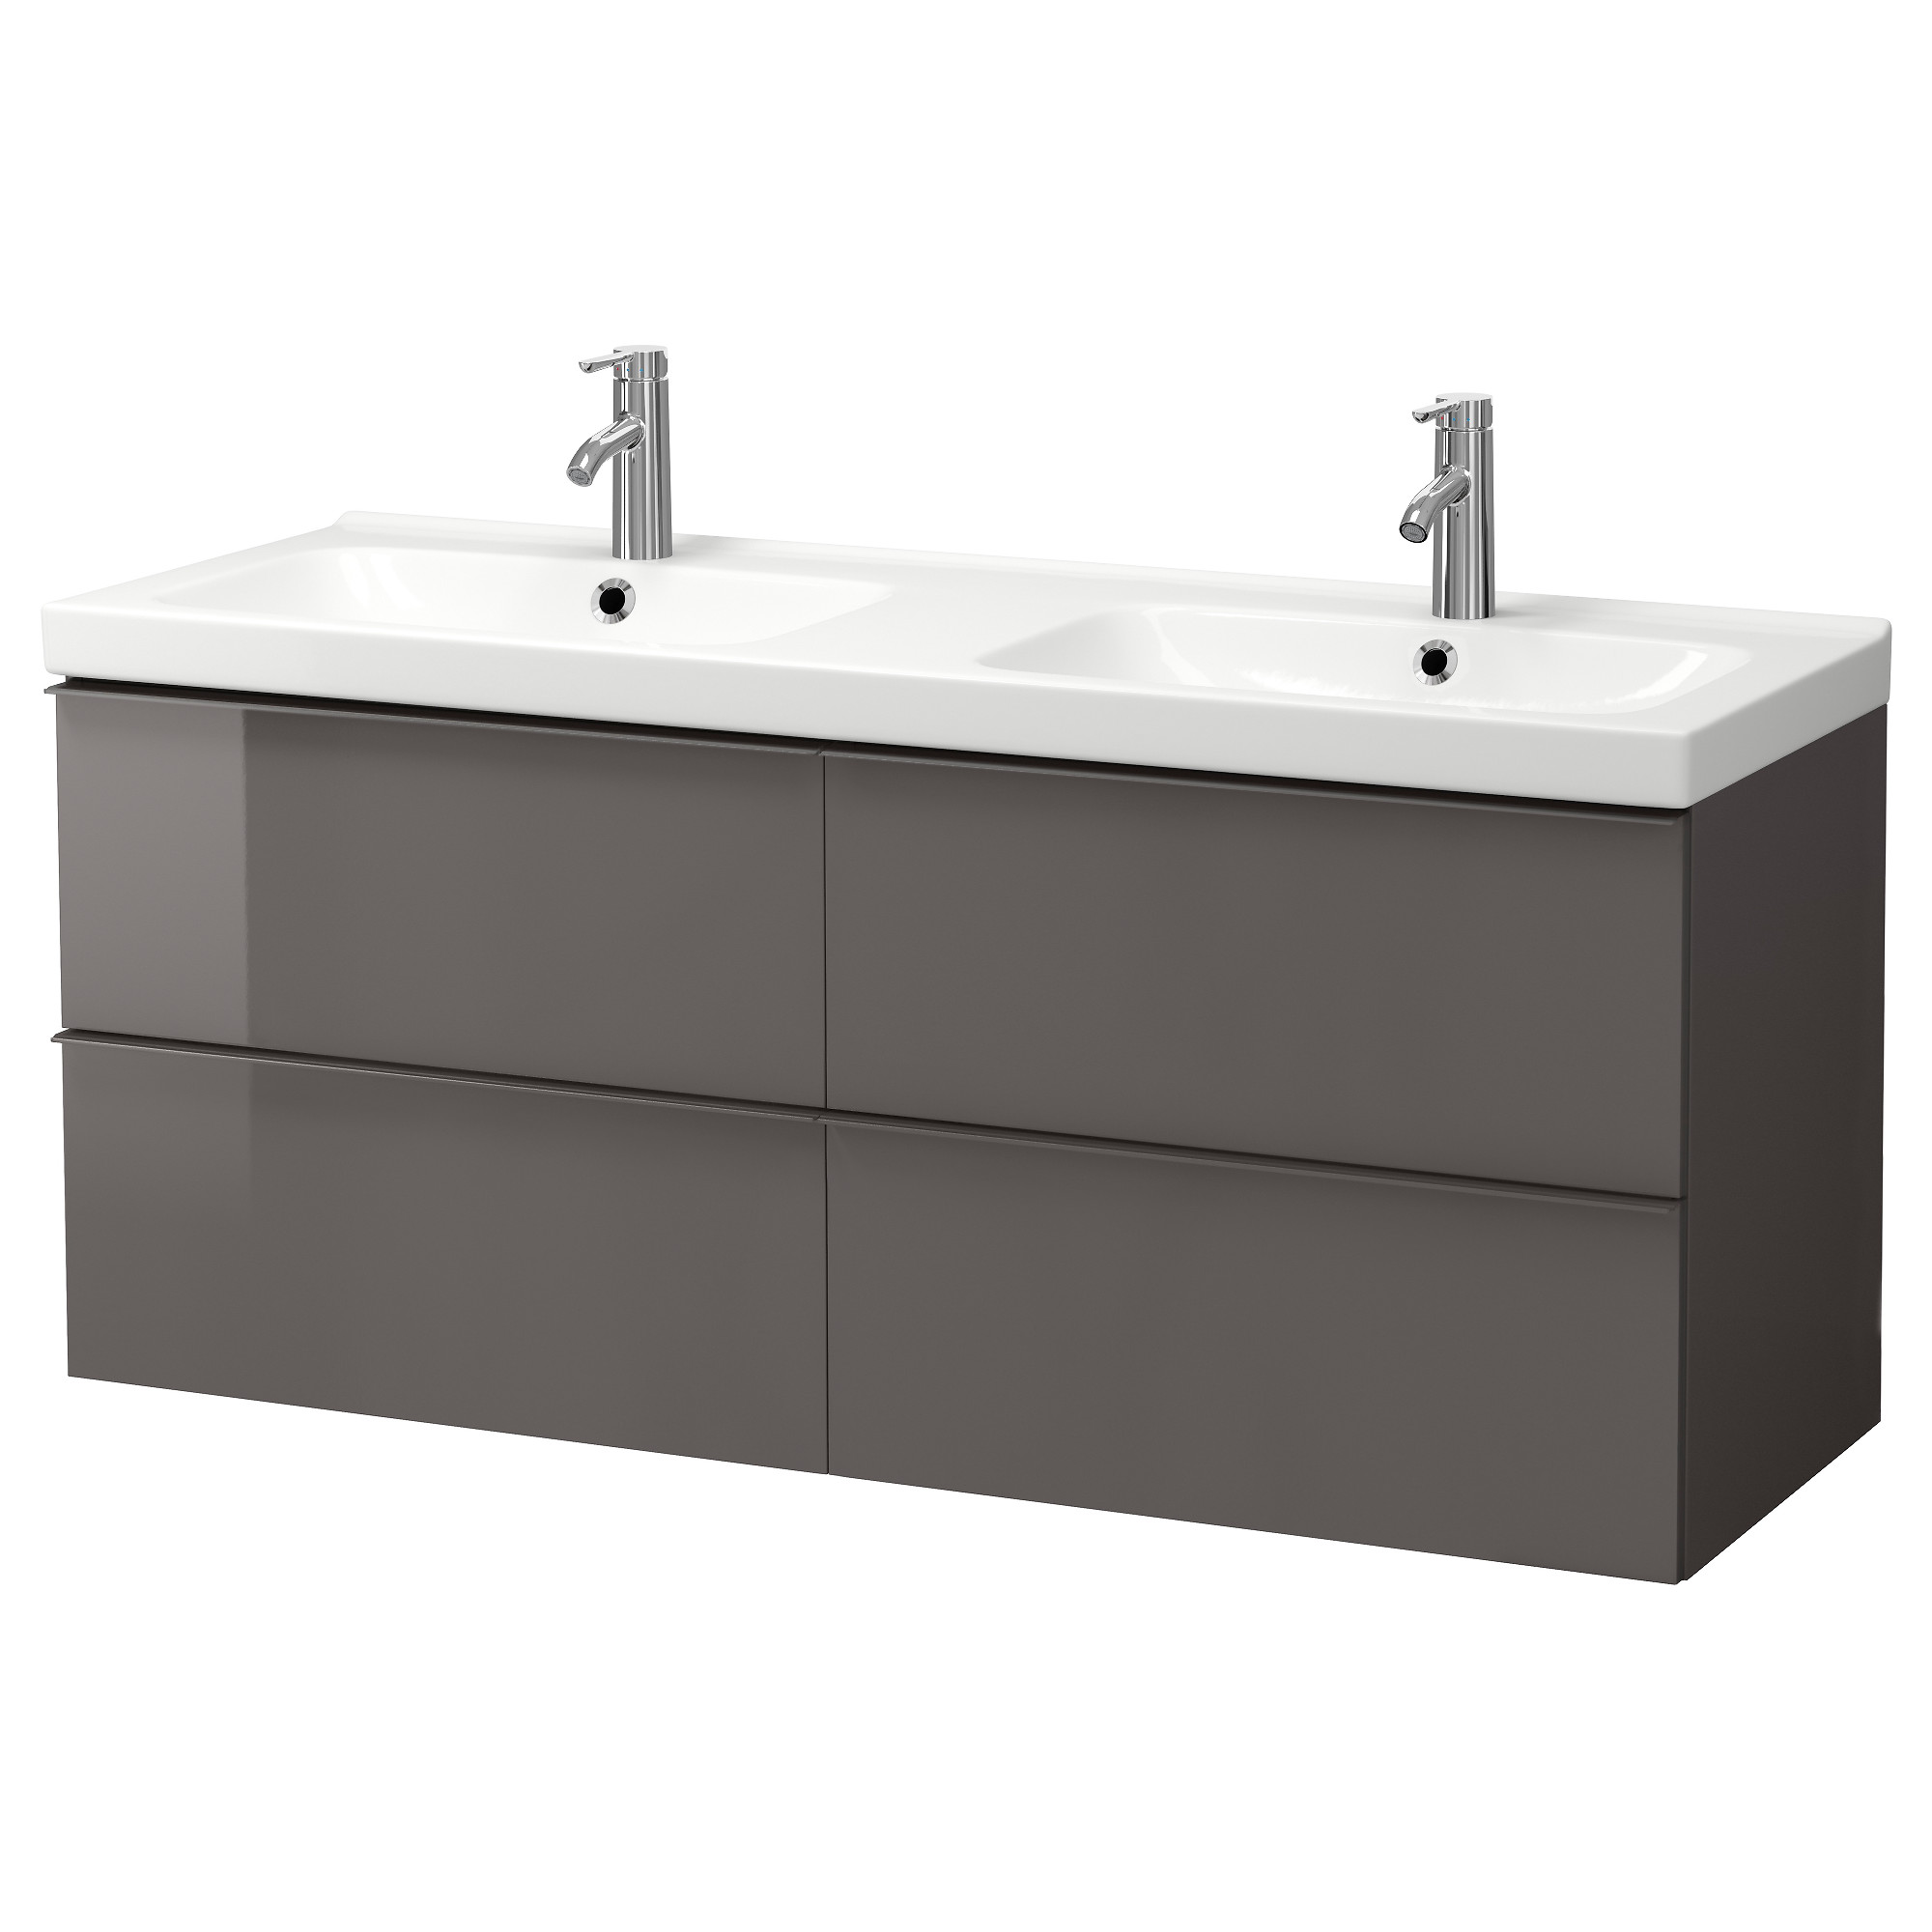 godmorgon odensvik meuble pour lavabo 2 tiroirs of meuble 4 tiroirs ikea. Black Bedroom Furniture Sets. Home Design Ideas